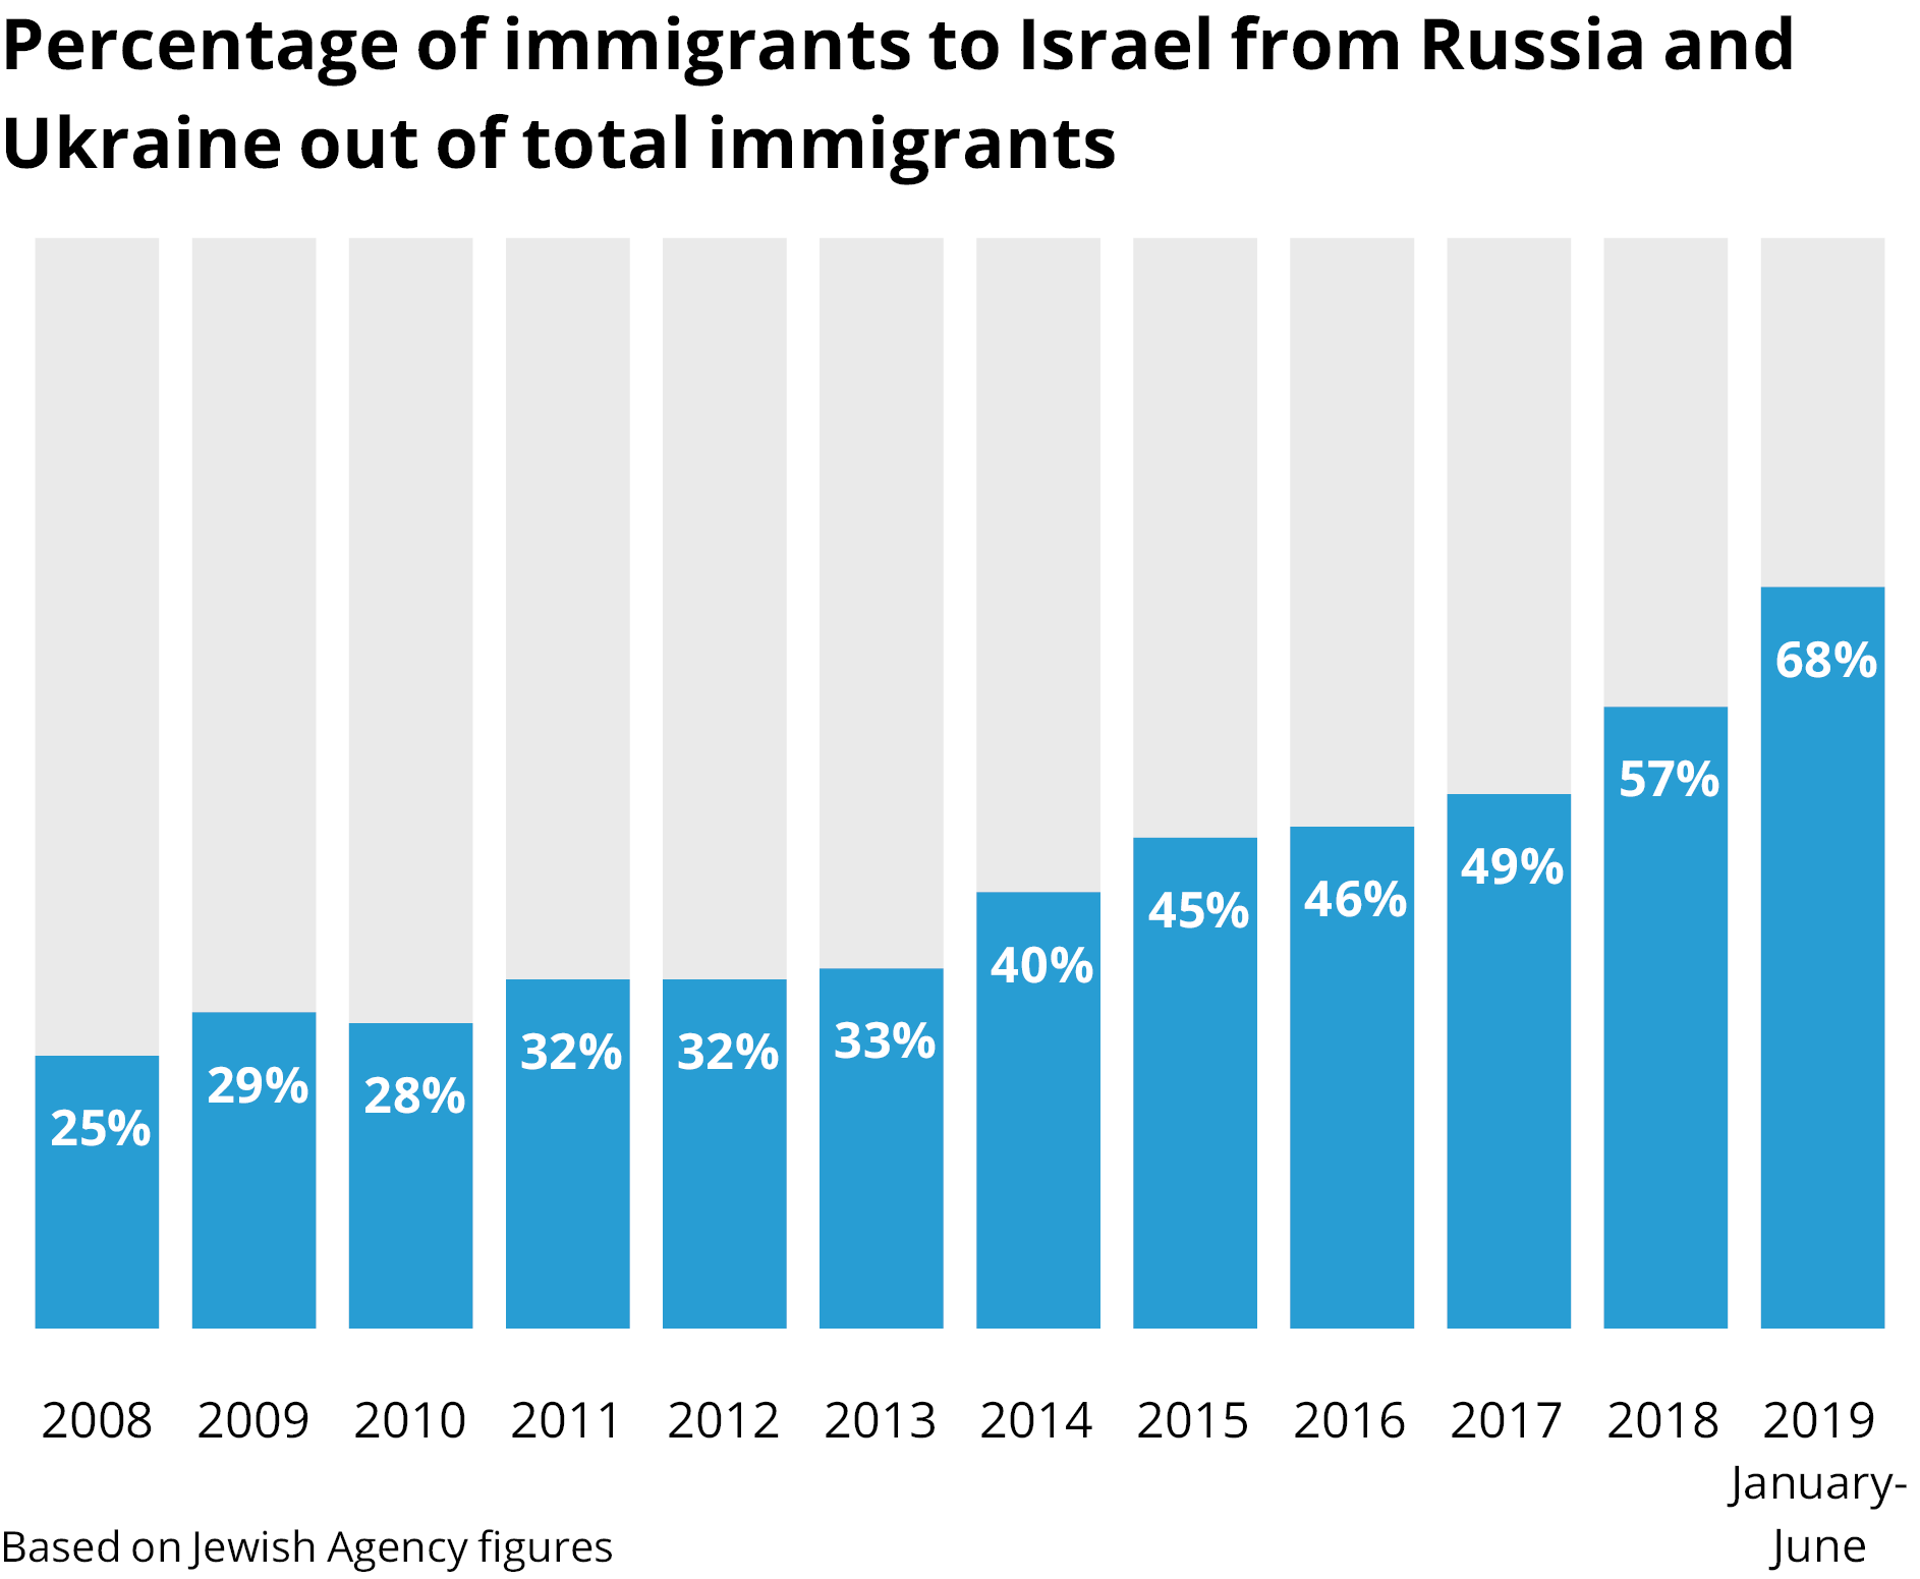 Percentage of immigrants to Israel from Russia and Ukraine out of total immigrants